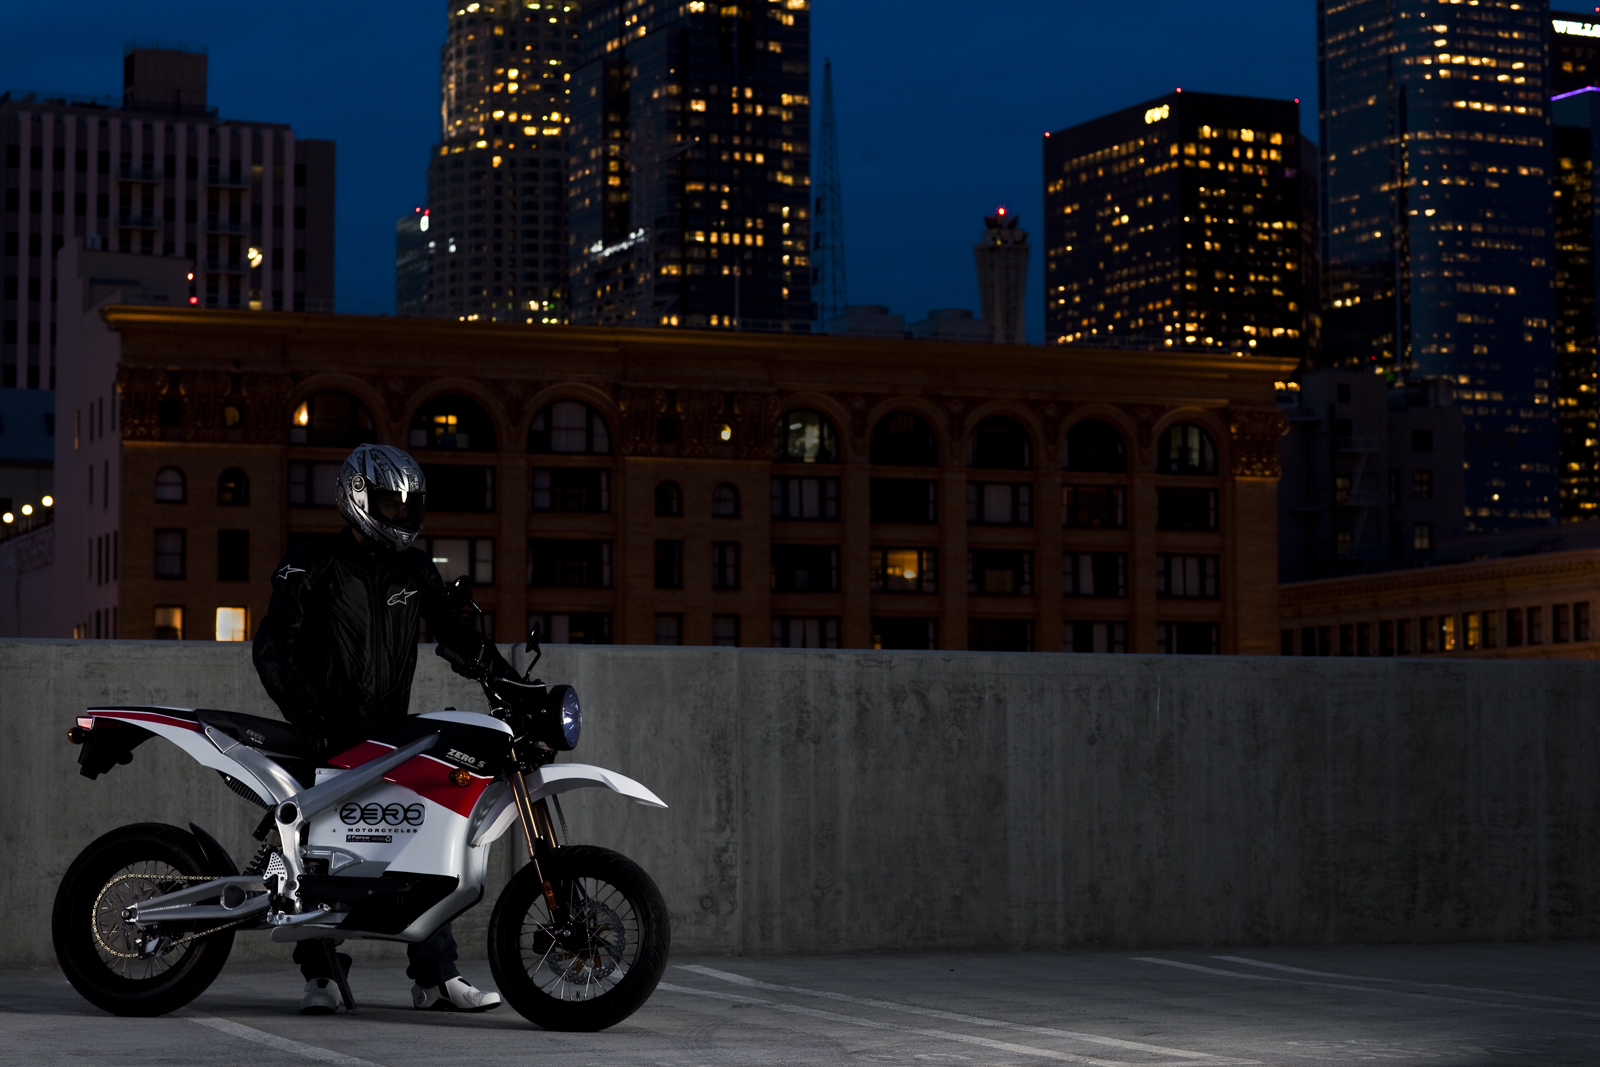 '.2010 Zero S Electric Motorcycle: Los Angeles - City Lights.'